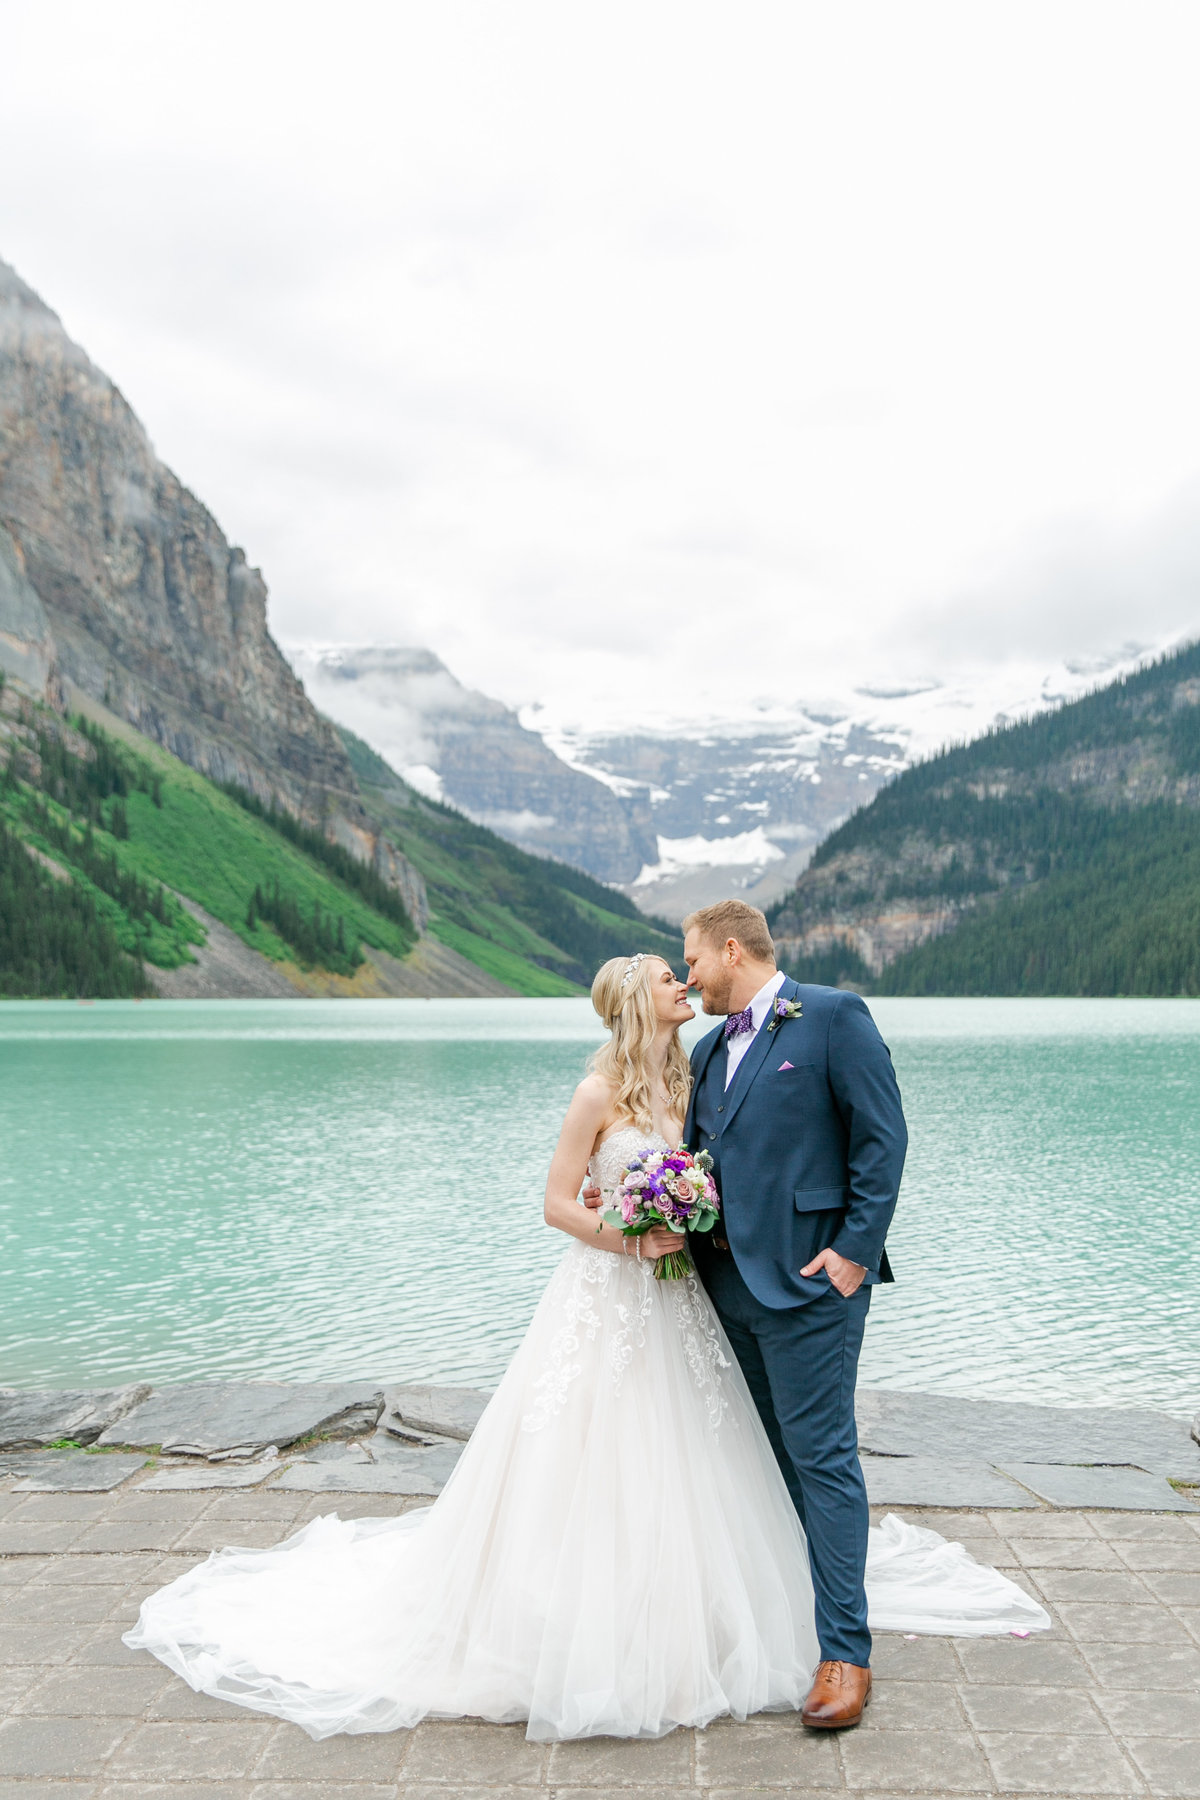 Karlie Colleen Photography - Fairmont Chateau Lake Louise Wedding - Banff Canada - Sara & Drew Forsberg-422